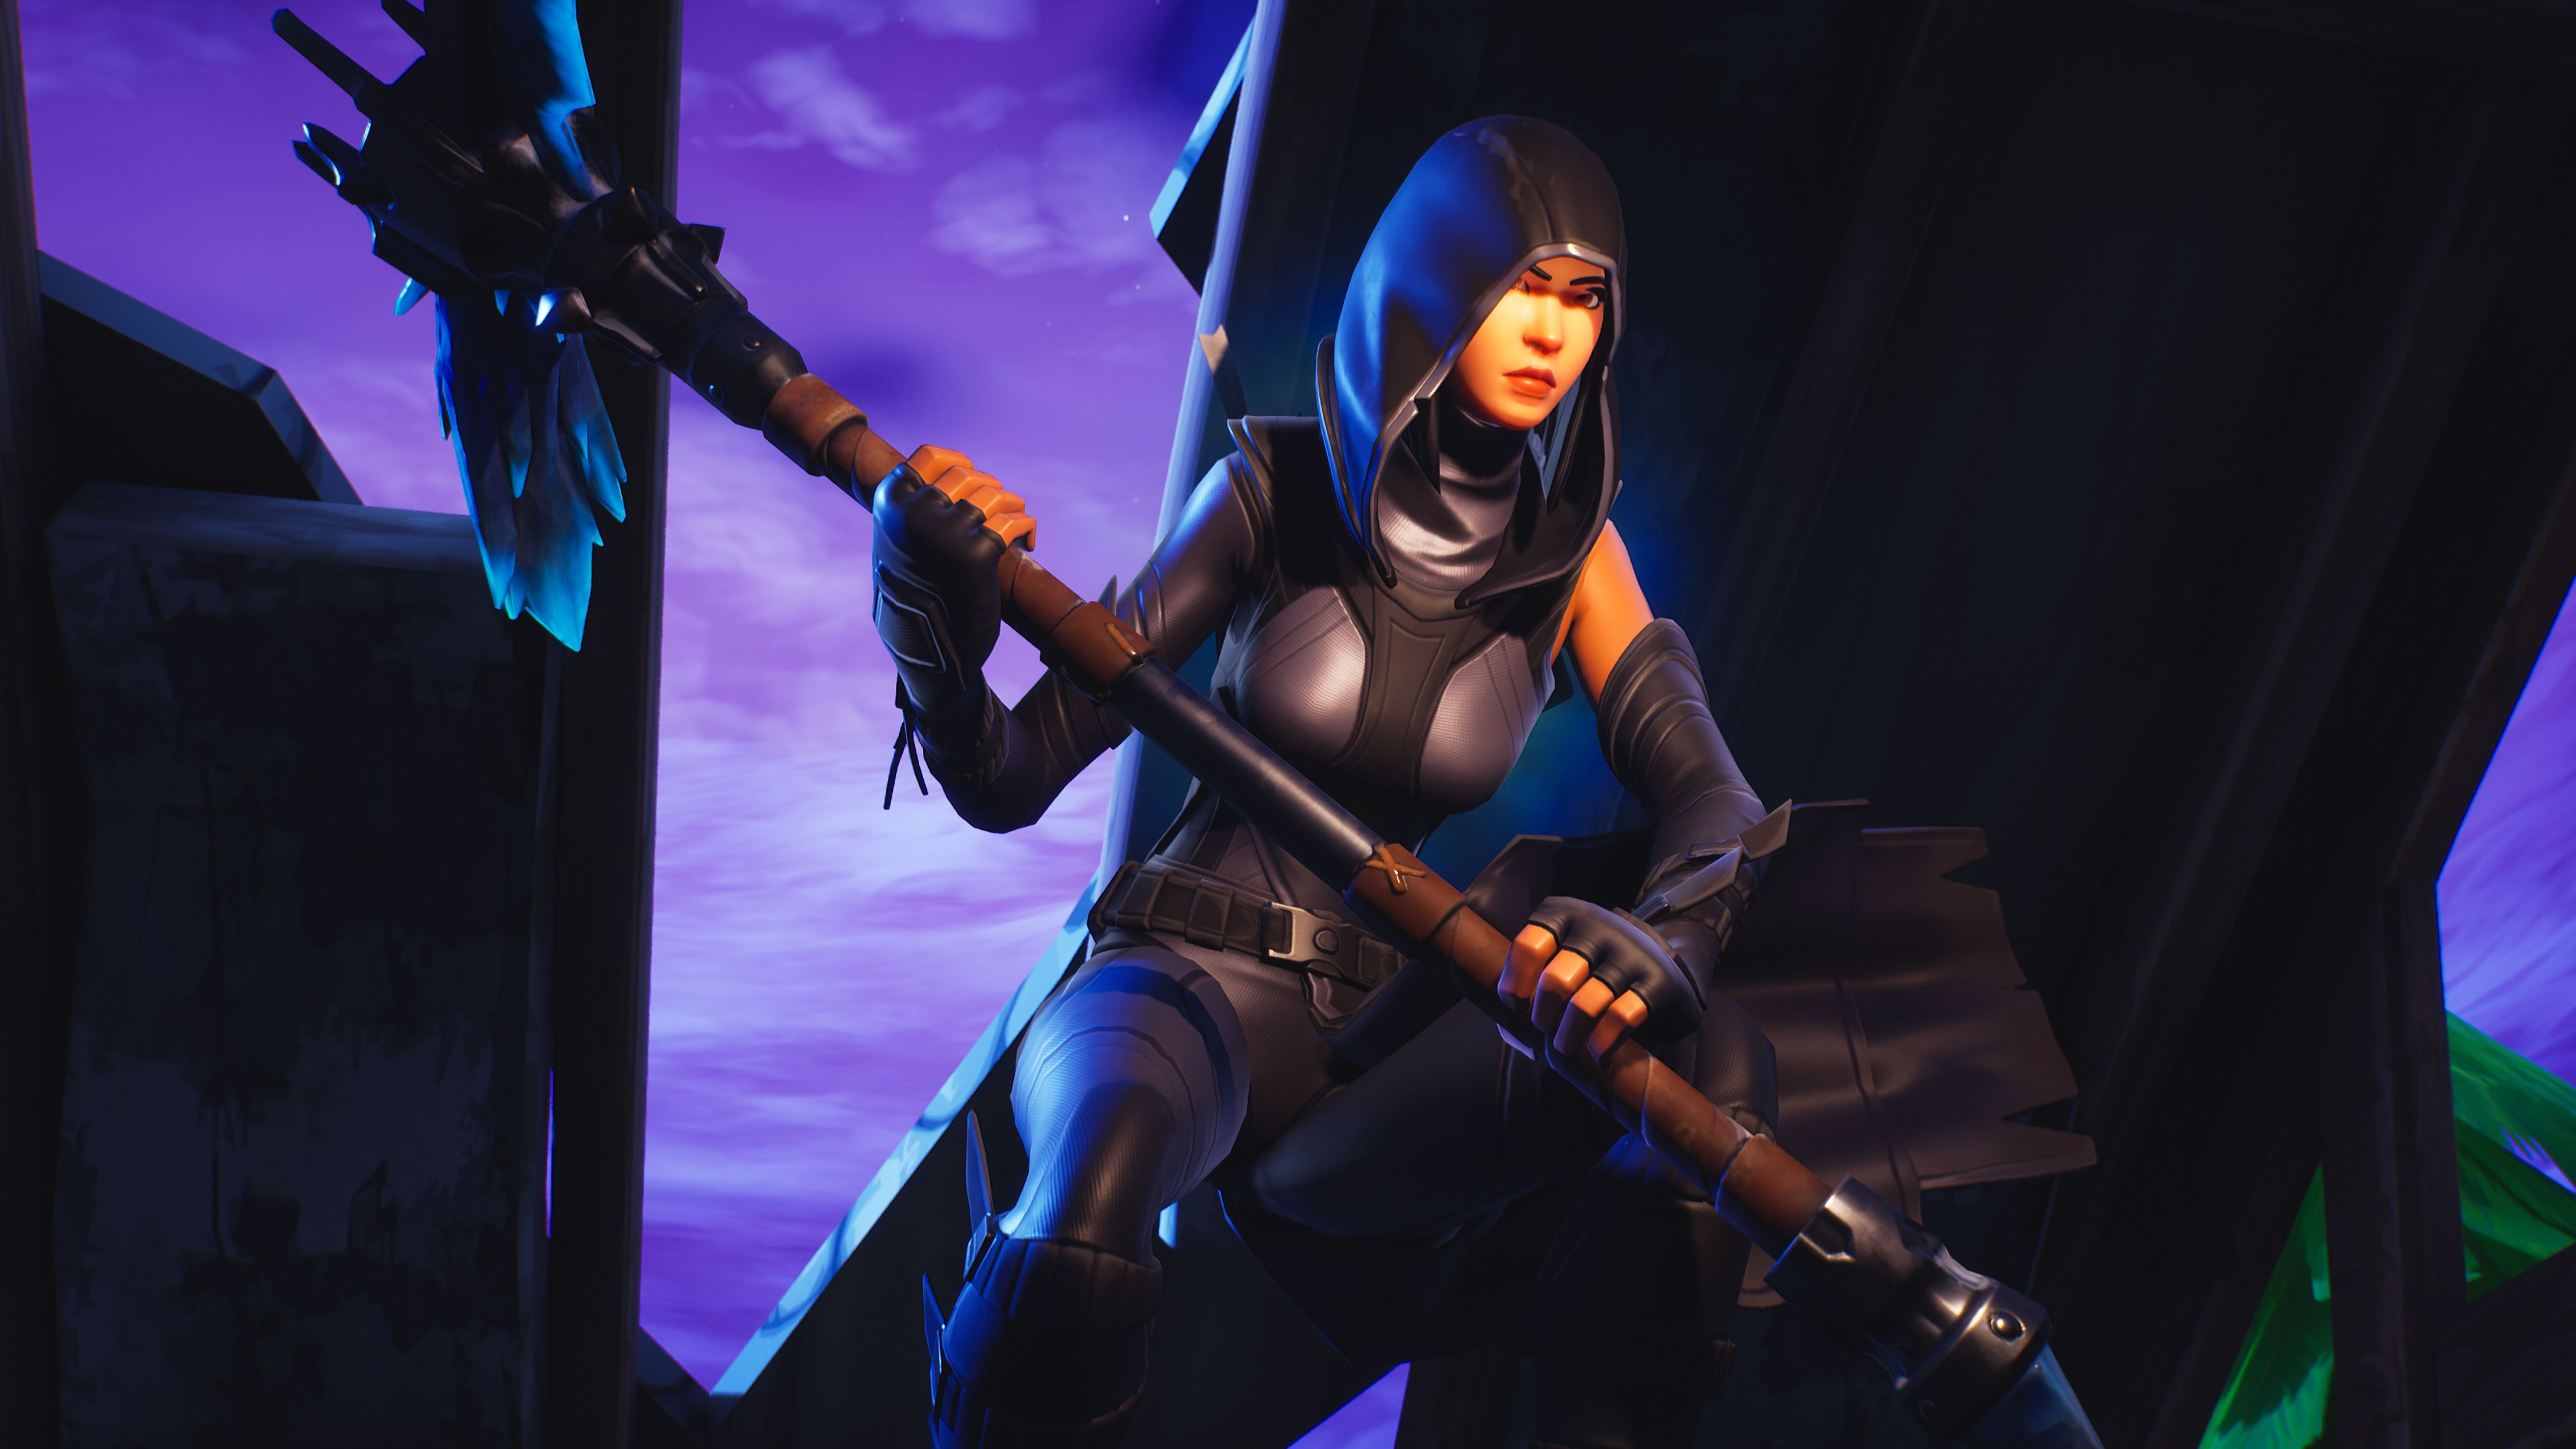 Fate Fortnite 4k Wallpapers Battle Royale 4k Hd Wallpapers Games Wallpapers2018 Games Wallpapers Games Wallpapers Fo Hd Wallpaper Cool Backgrounds Wallpaper